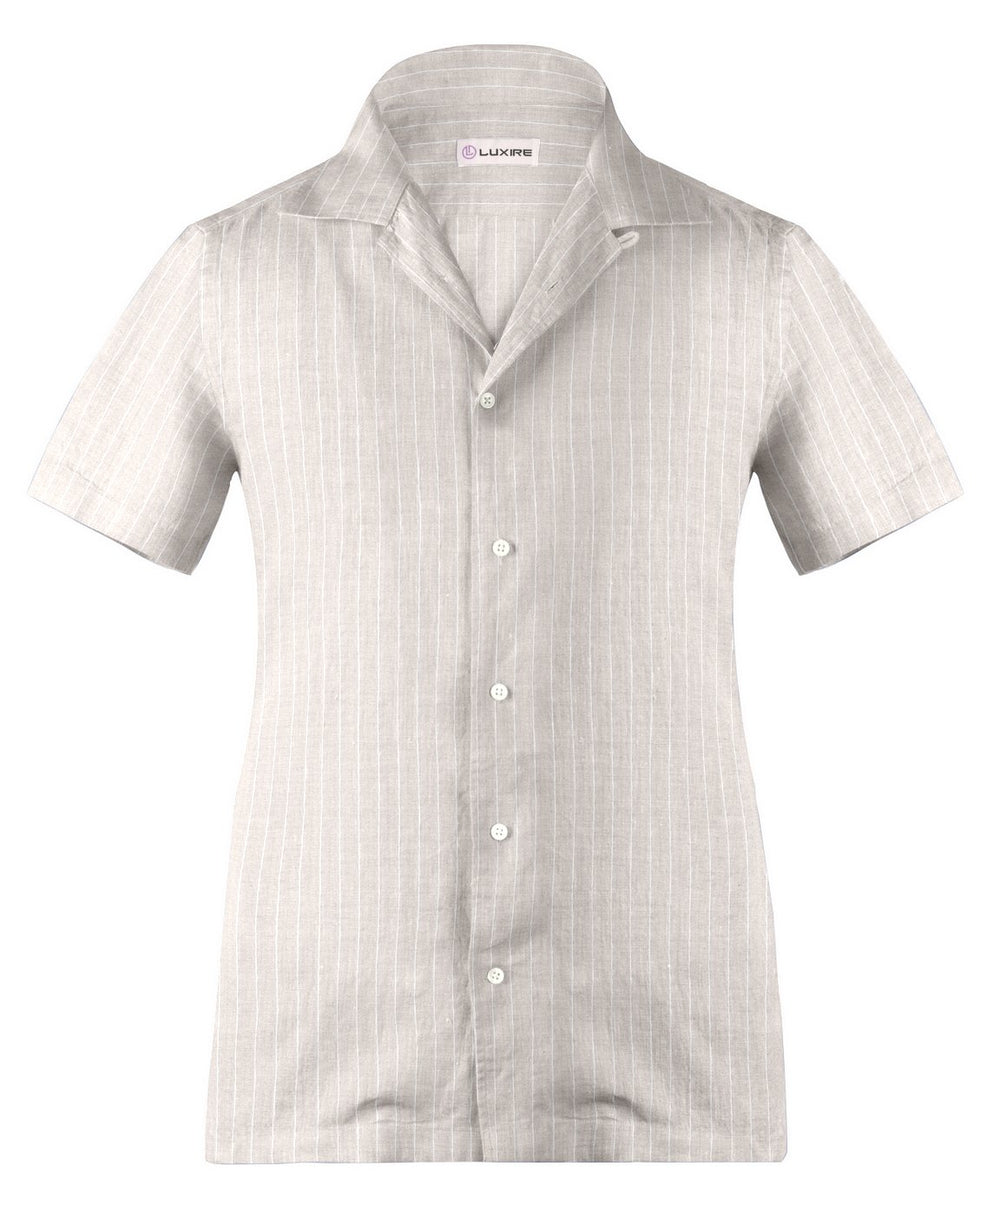 Camp collar PRESET STYLE in Lamb Beige Wide Pin Stripes Linen (1646198882359)